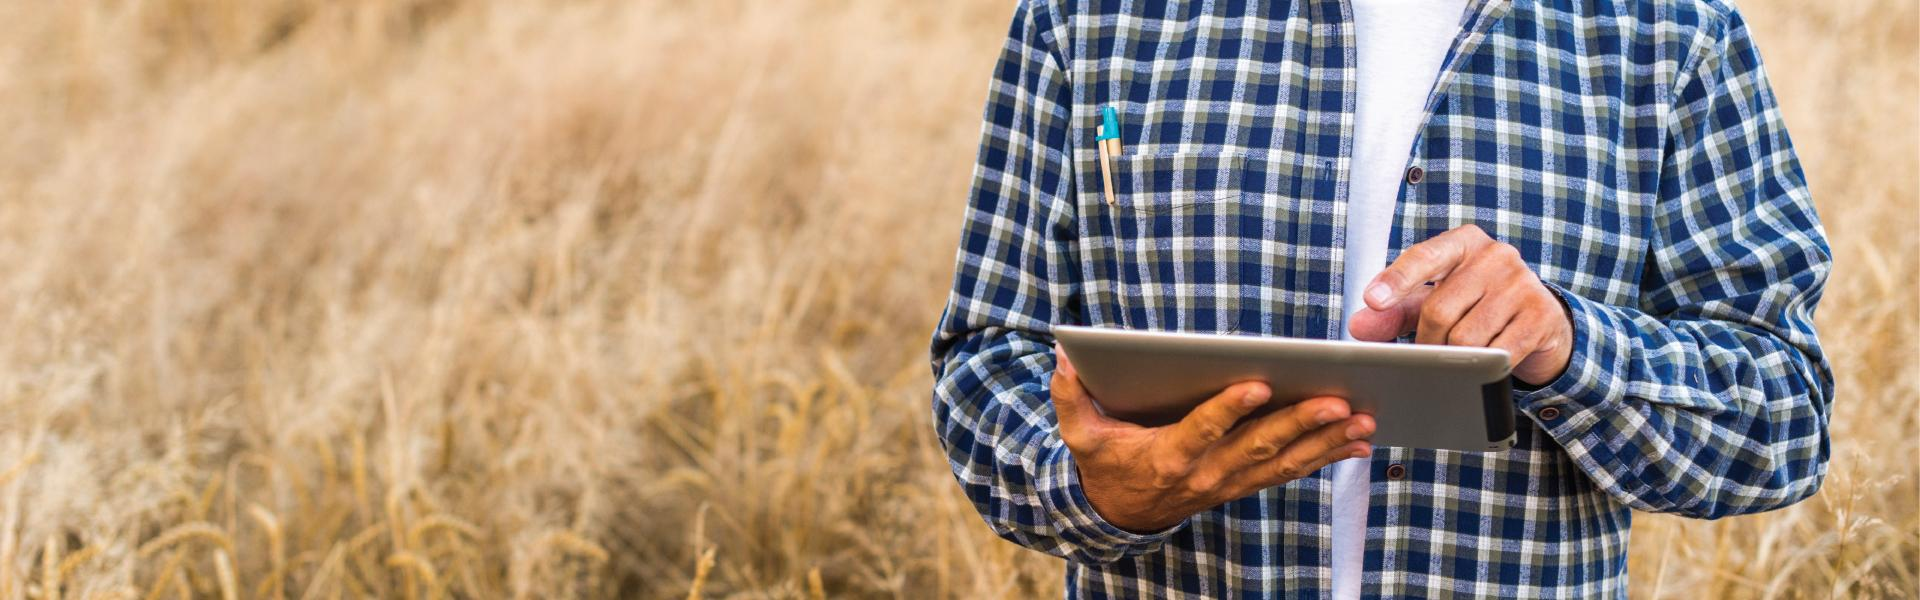 man in field using tablet